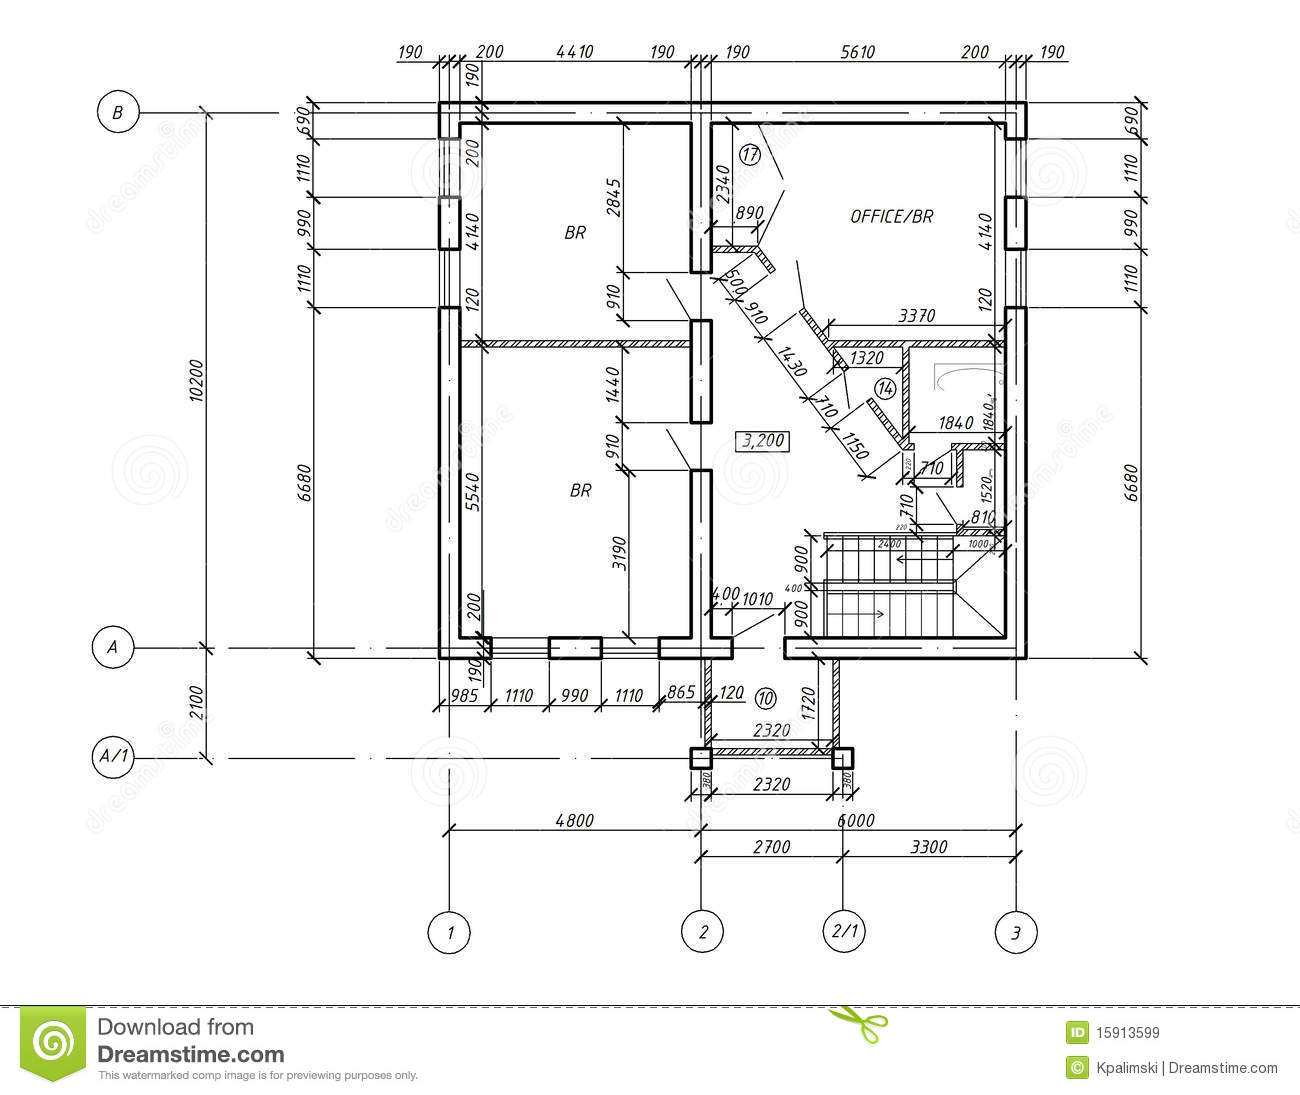 Residential Electrical Plan Symbols Understanding A